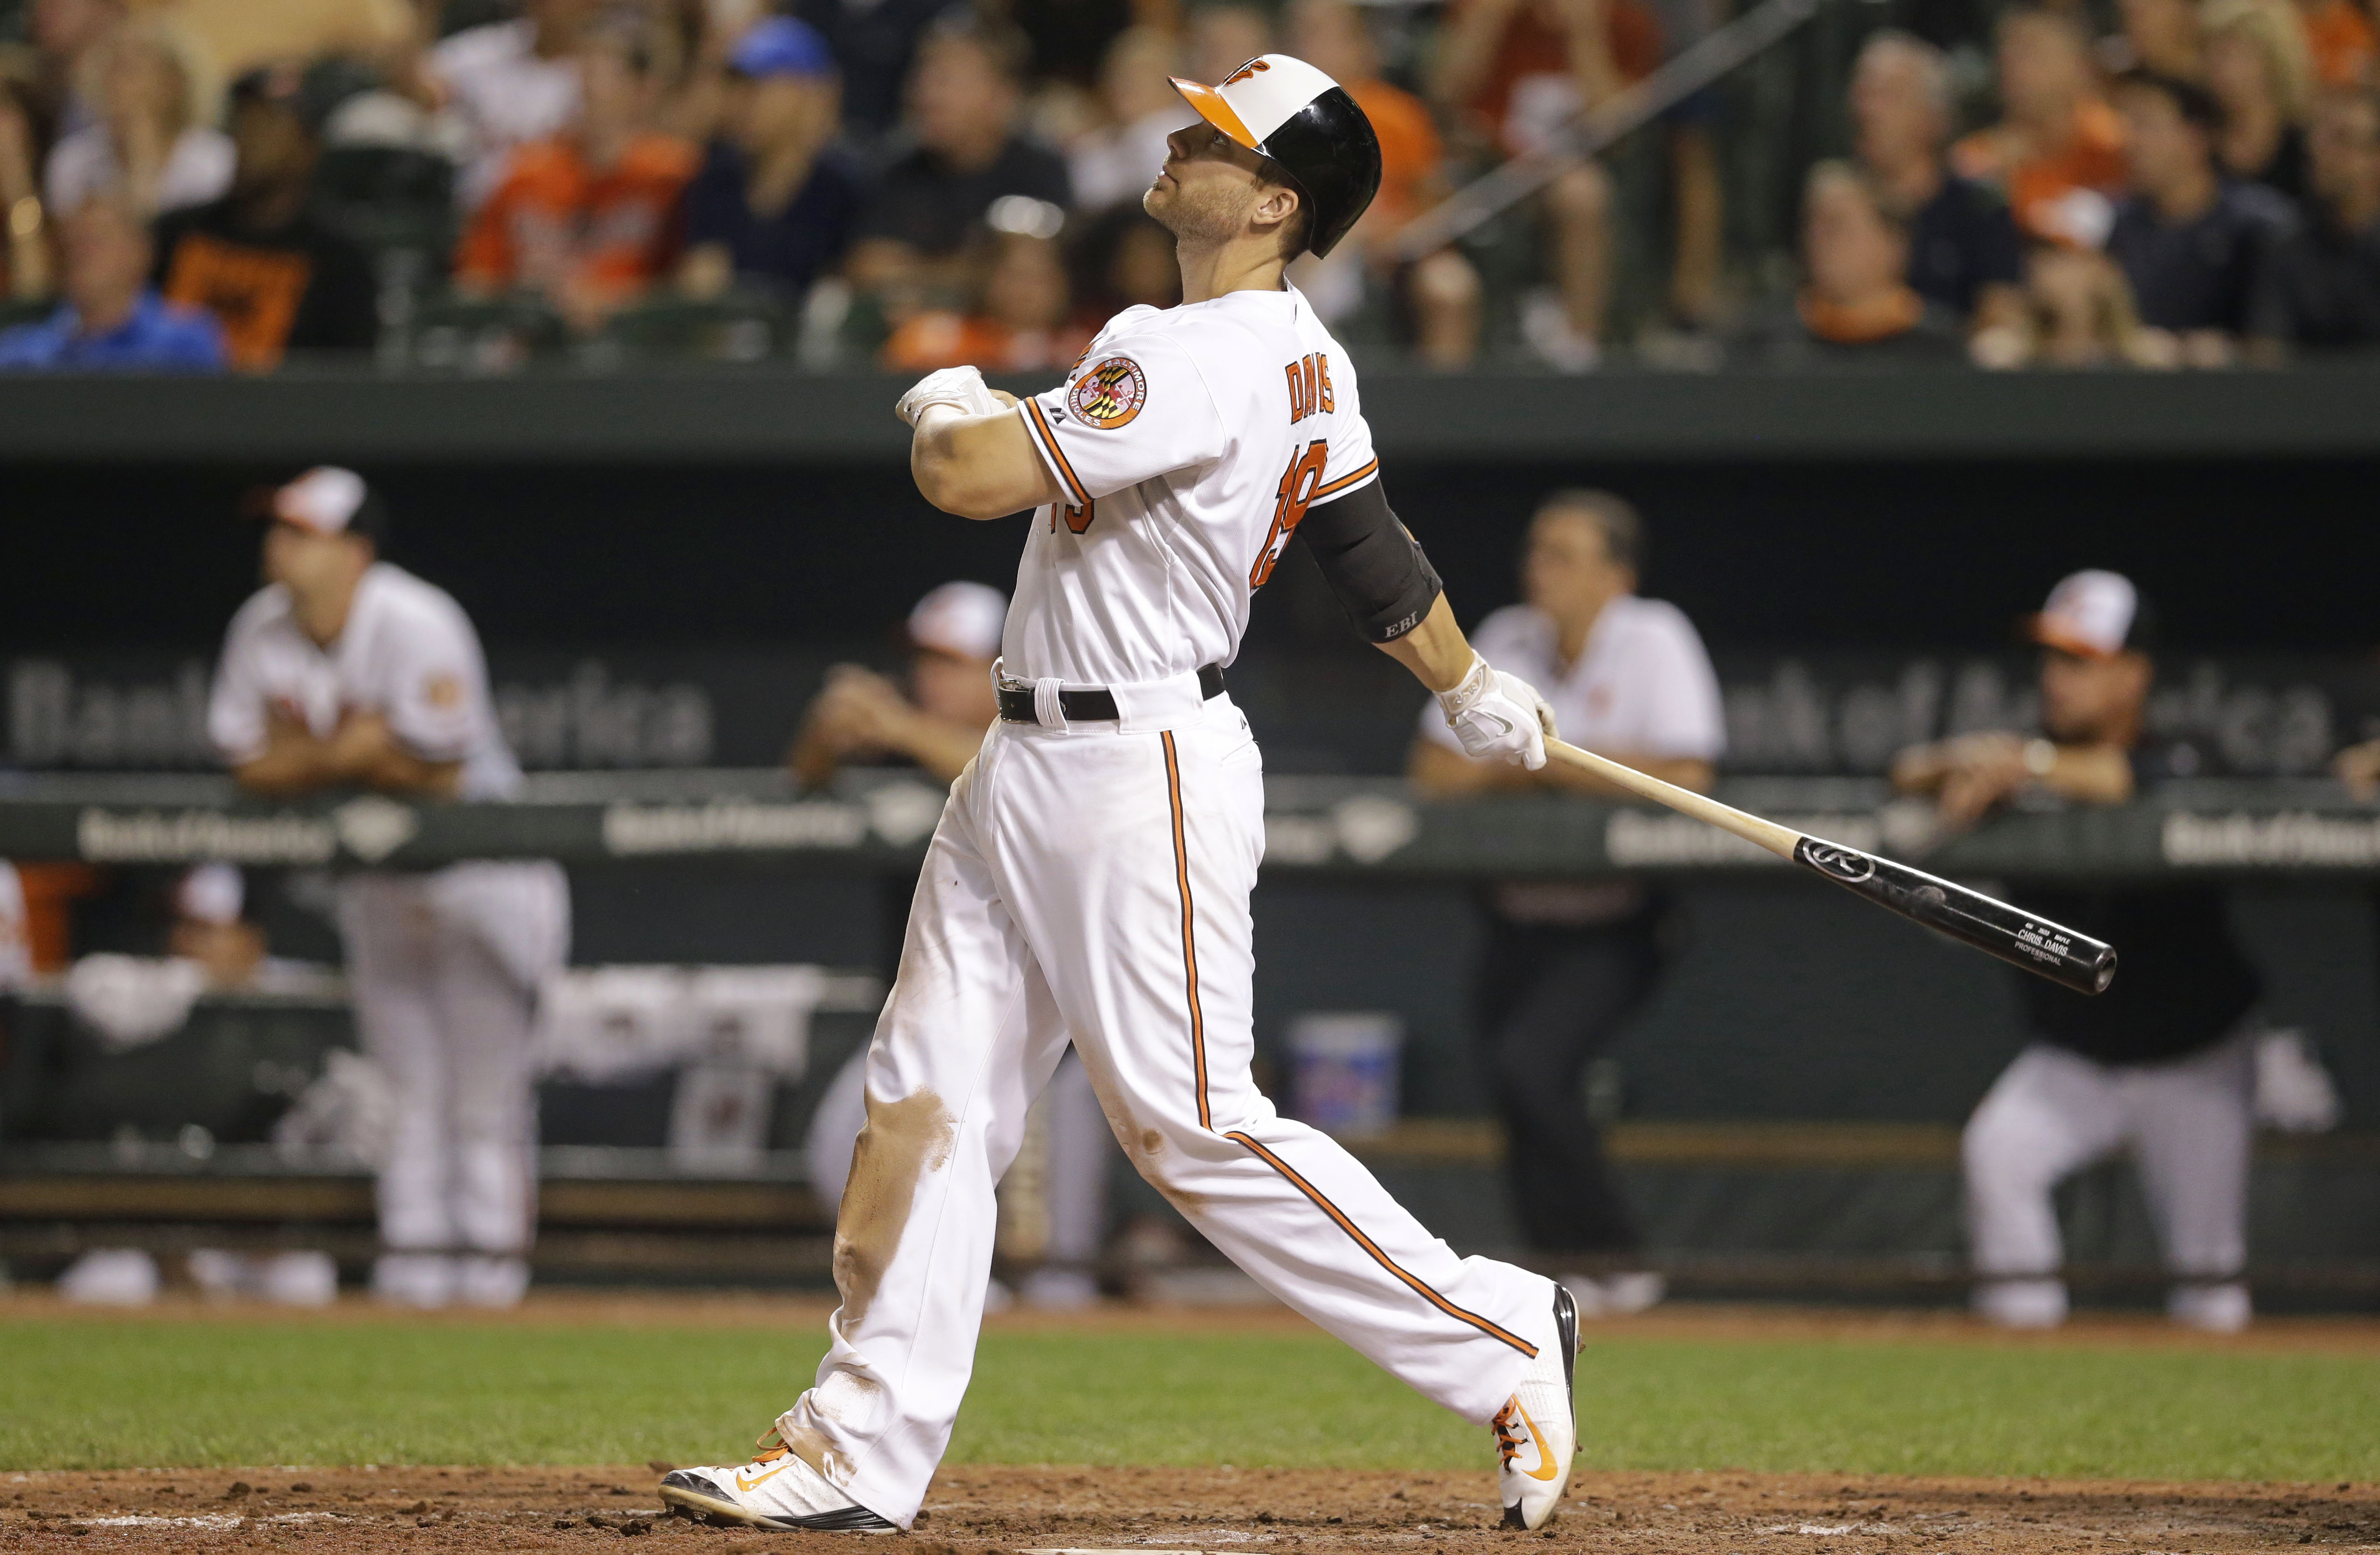 Baltimore Orioles' Chris Davis watches his solo home run during the 11th inning of a baseball game against the Tampa Bay Rays, Wednesday, Sept. 2, 2015, in Baltimore. Baltimore won 7-6. (AP Photo/Patrick Semansky)